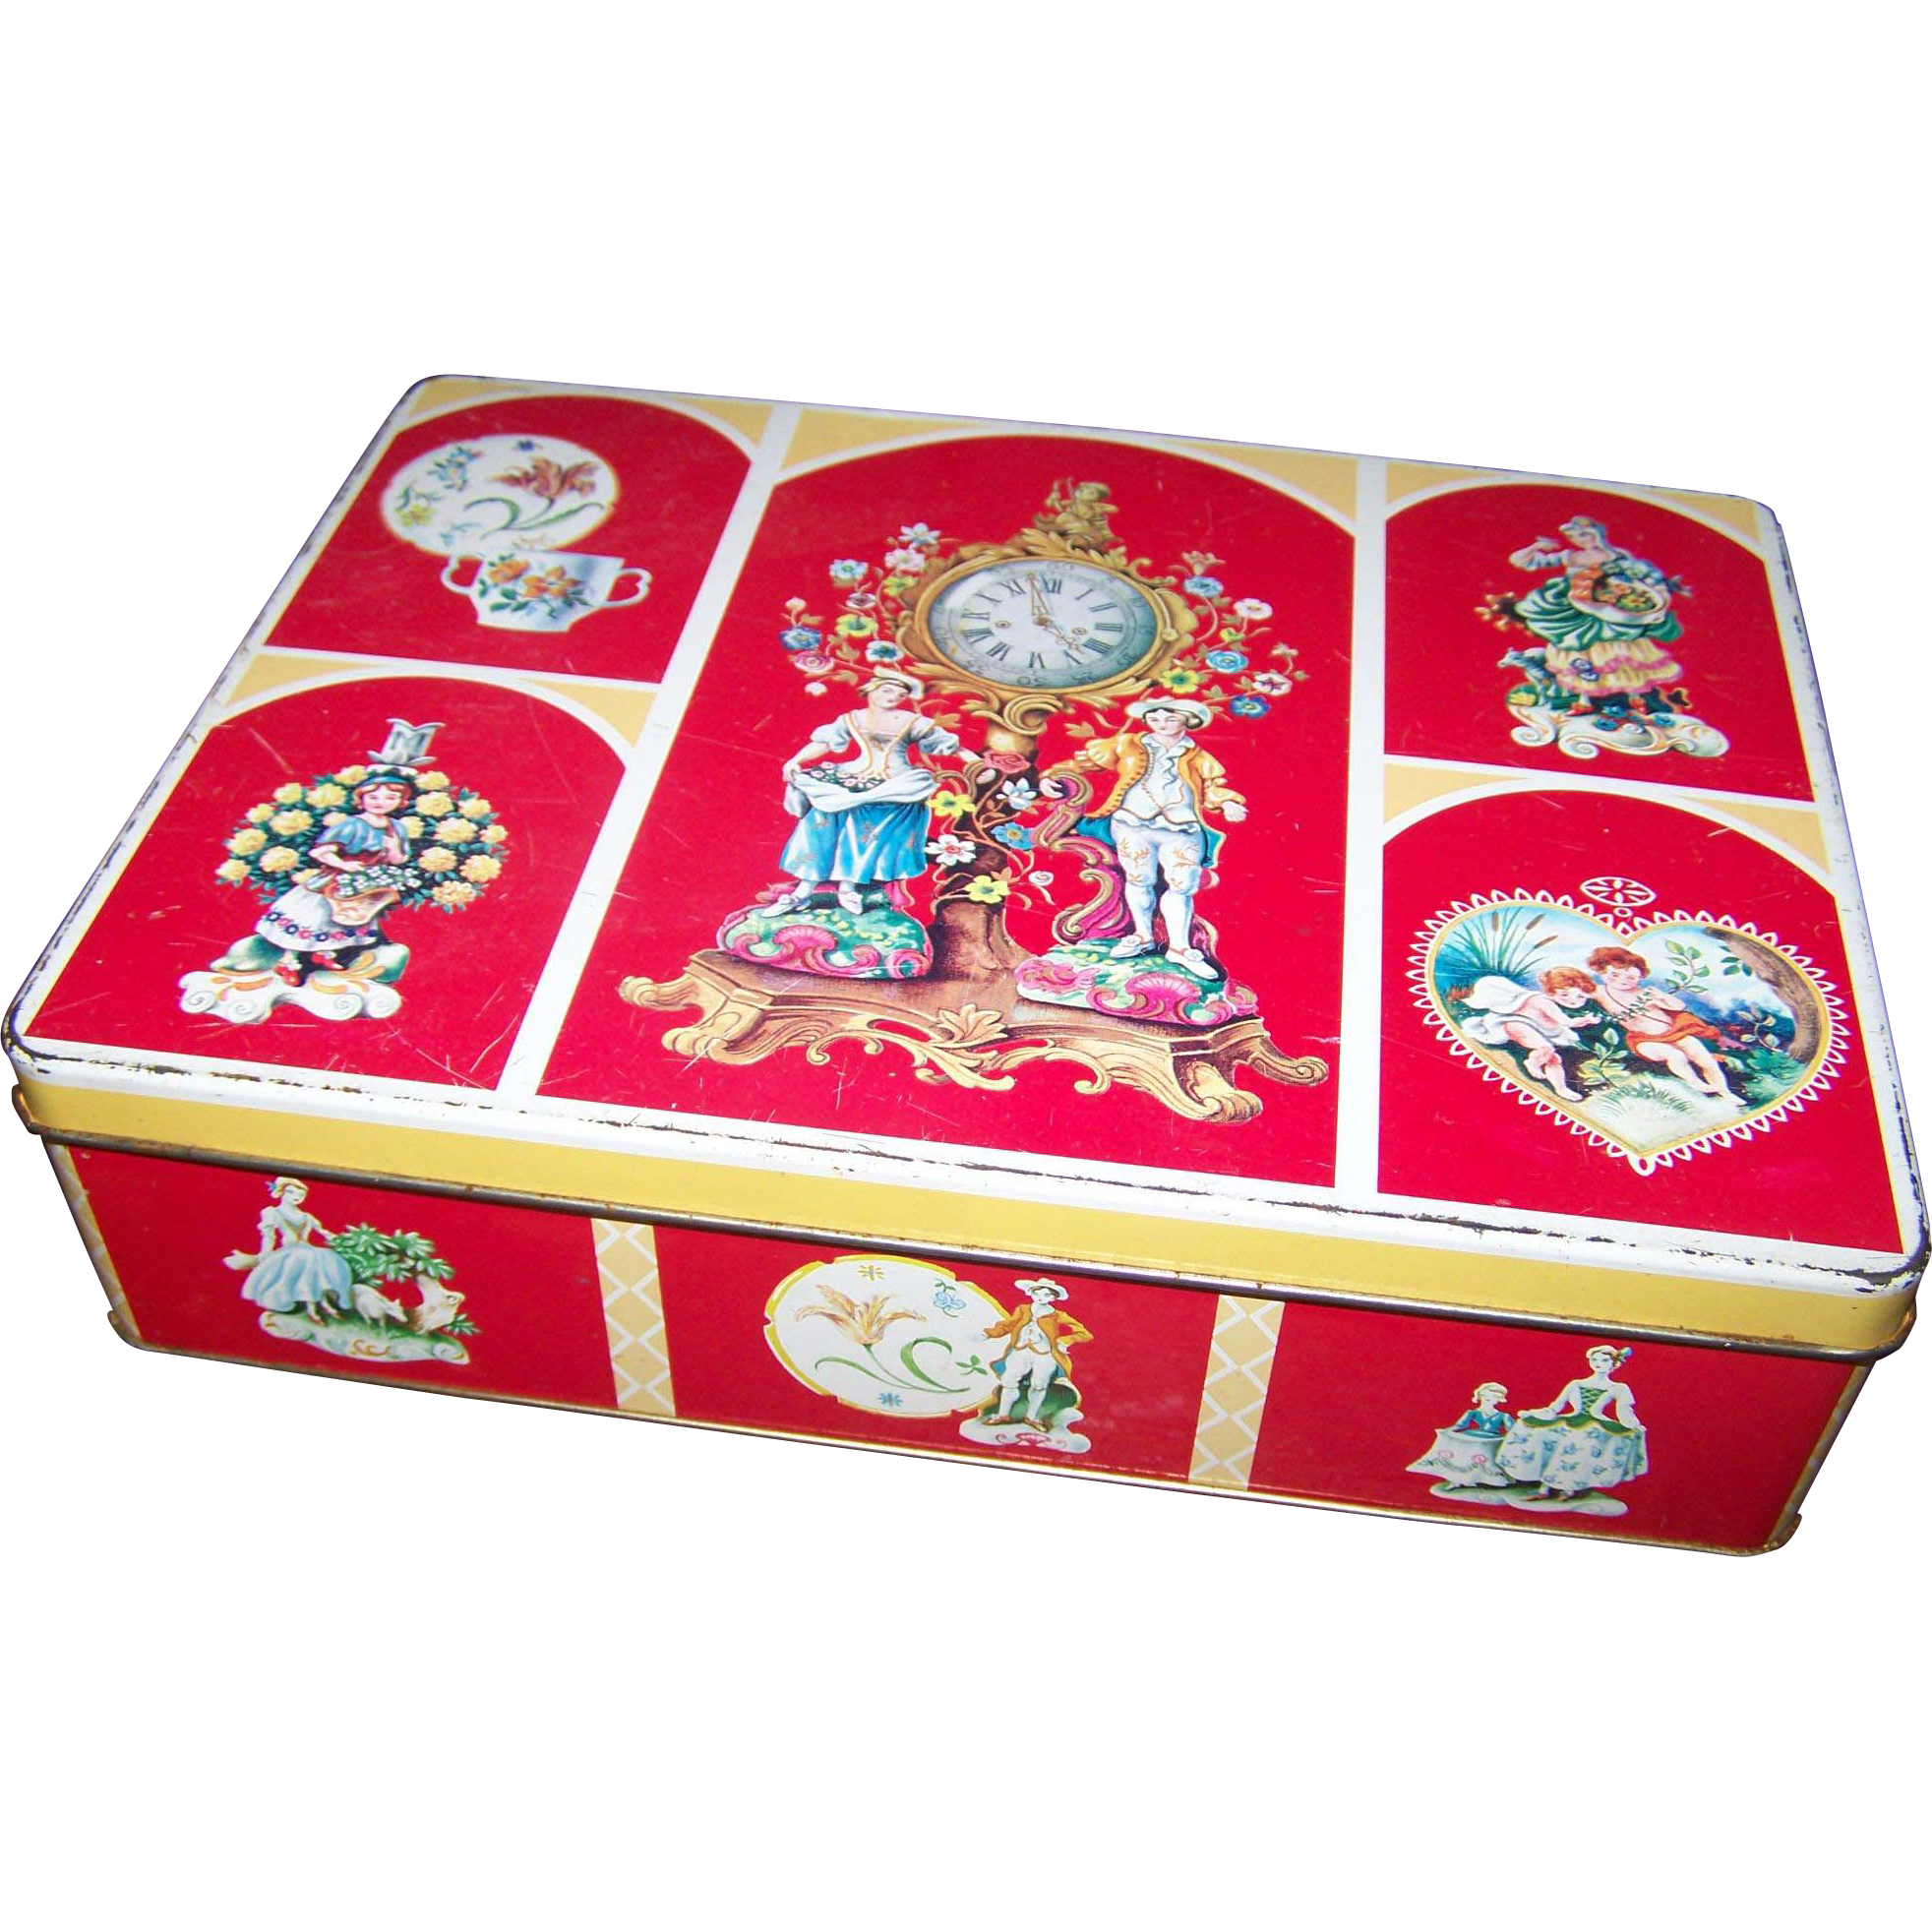 A Charming  English Biscuit Cookie  Tin With  Victorian Couple Cherubs Teacups Figurines